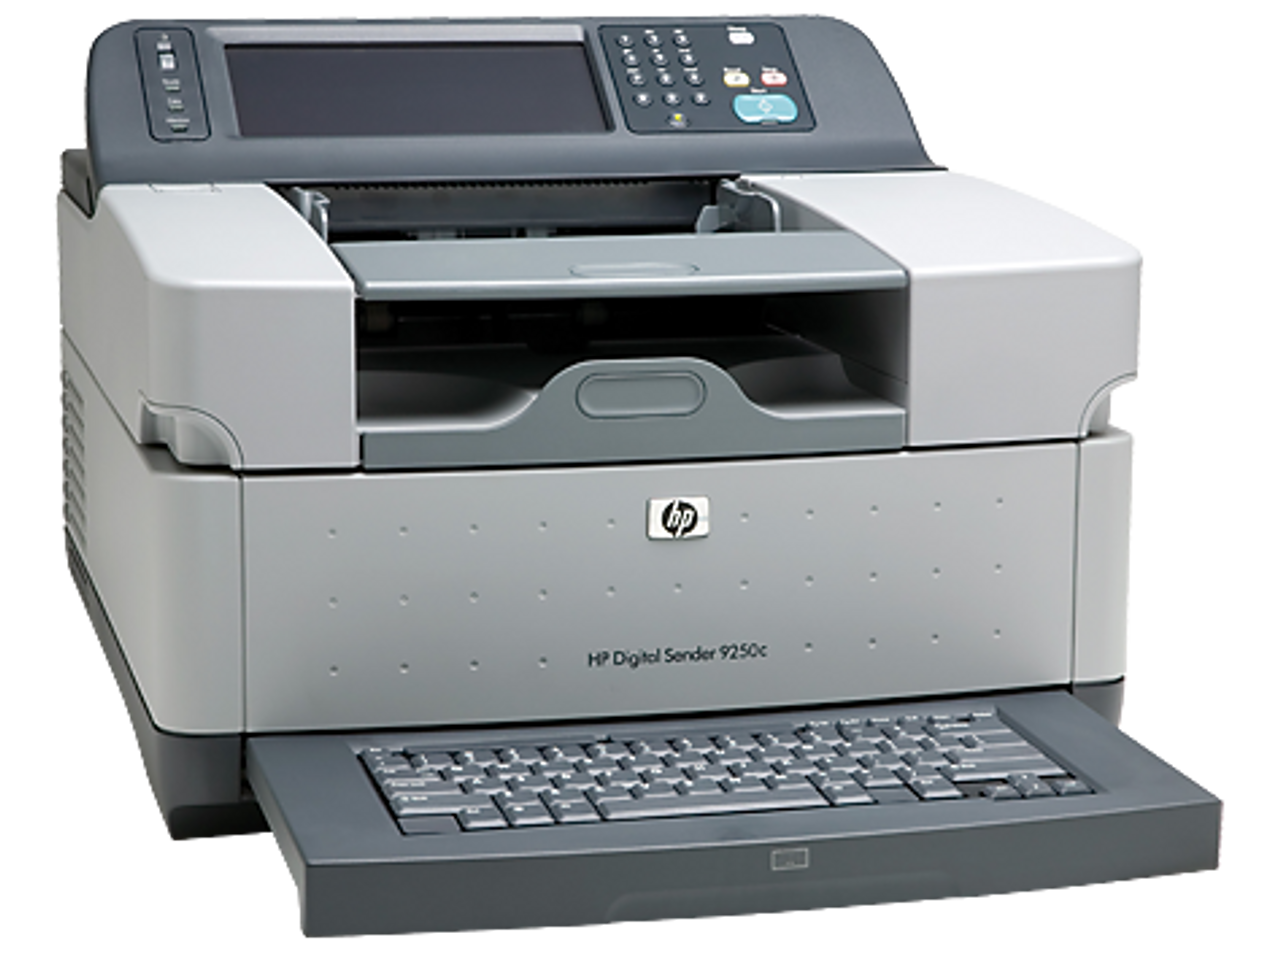 HP Digital Sender 9250c - 600 dpi x 600 dpi - Document scanner